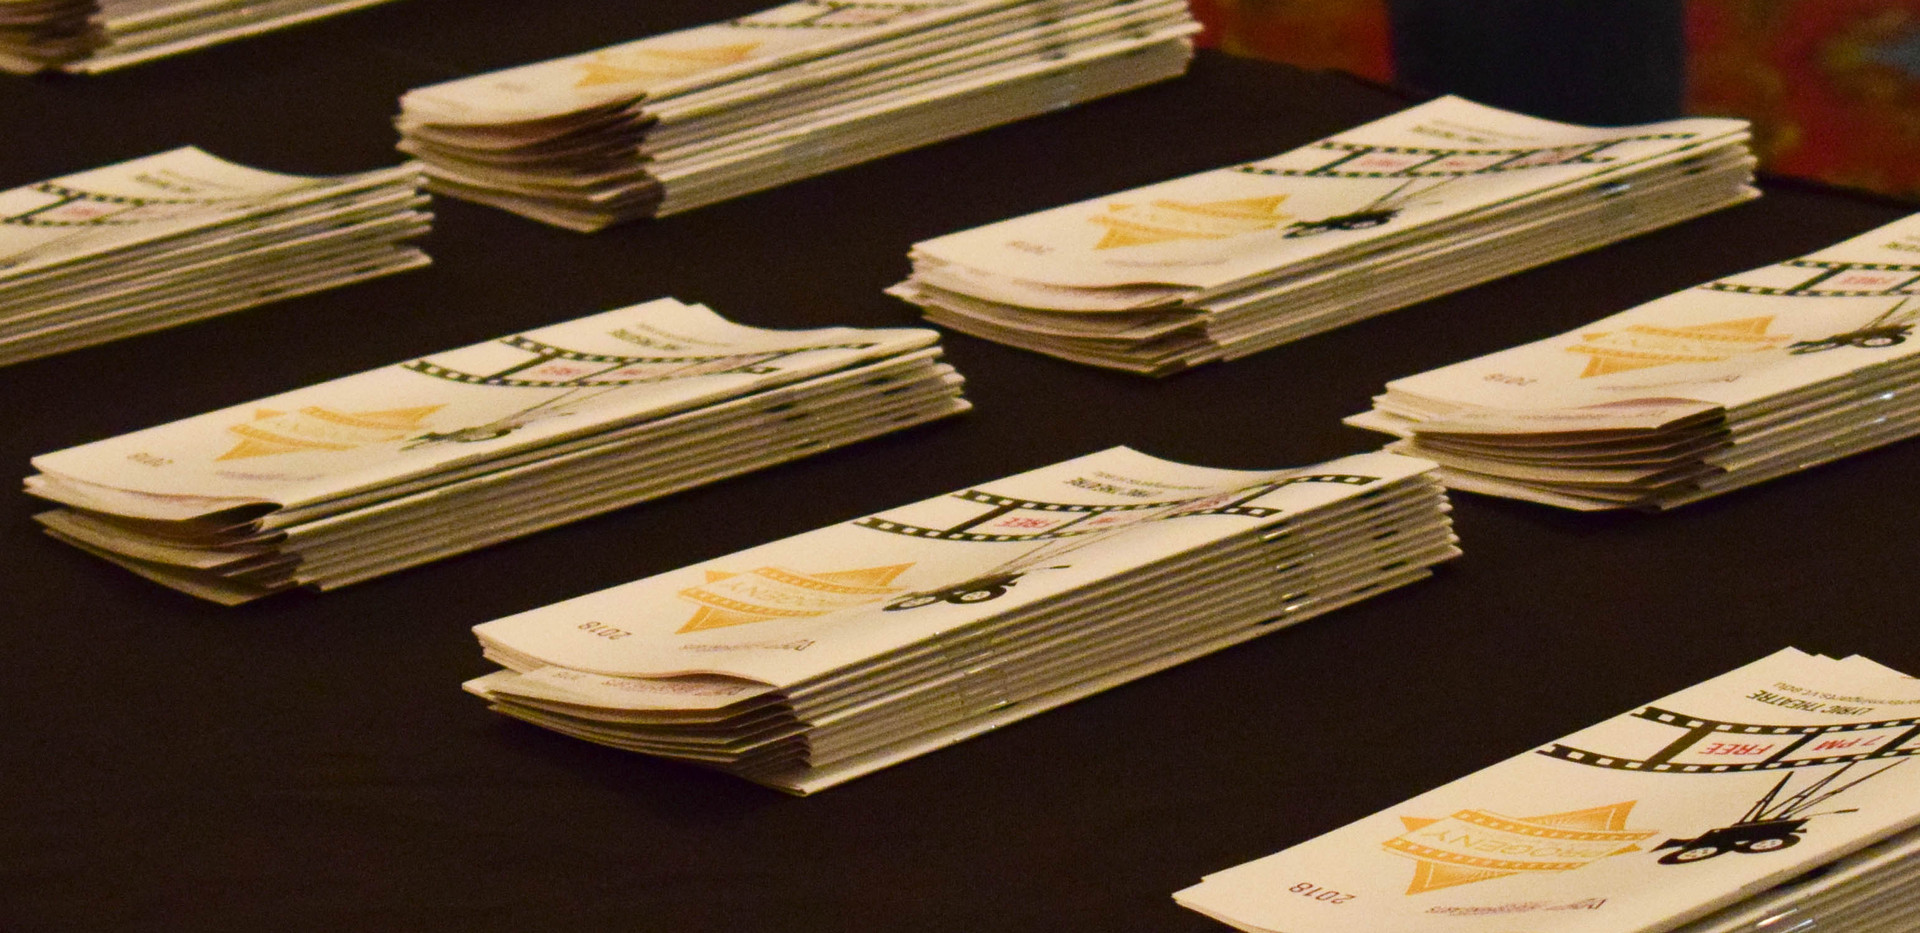 Progeny 2018 Programs, designed by Rebekah Seiler, printed and assembled by Virginia Tech Printing Services.